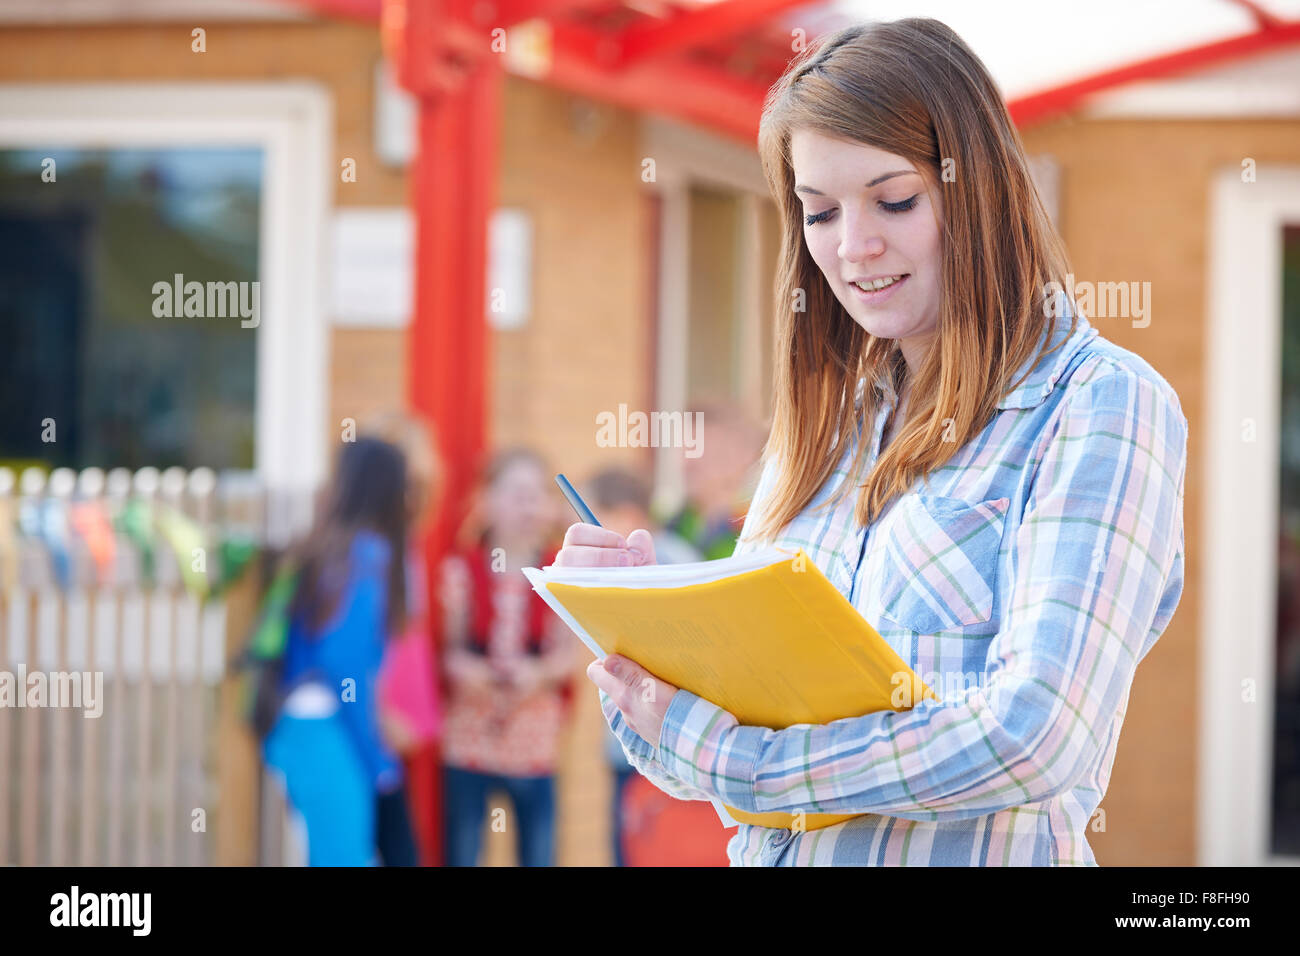 School Teacher Making Notes In Playground - Stock Image